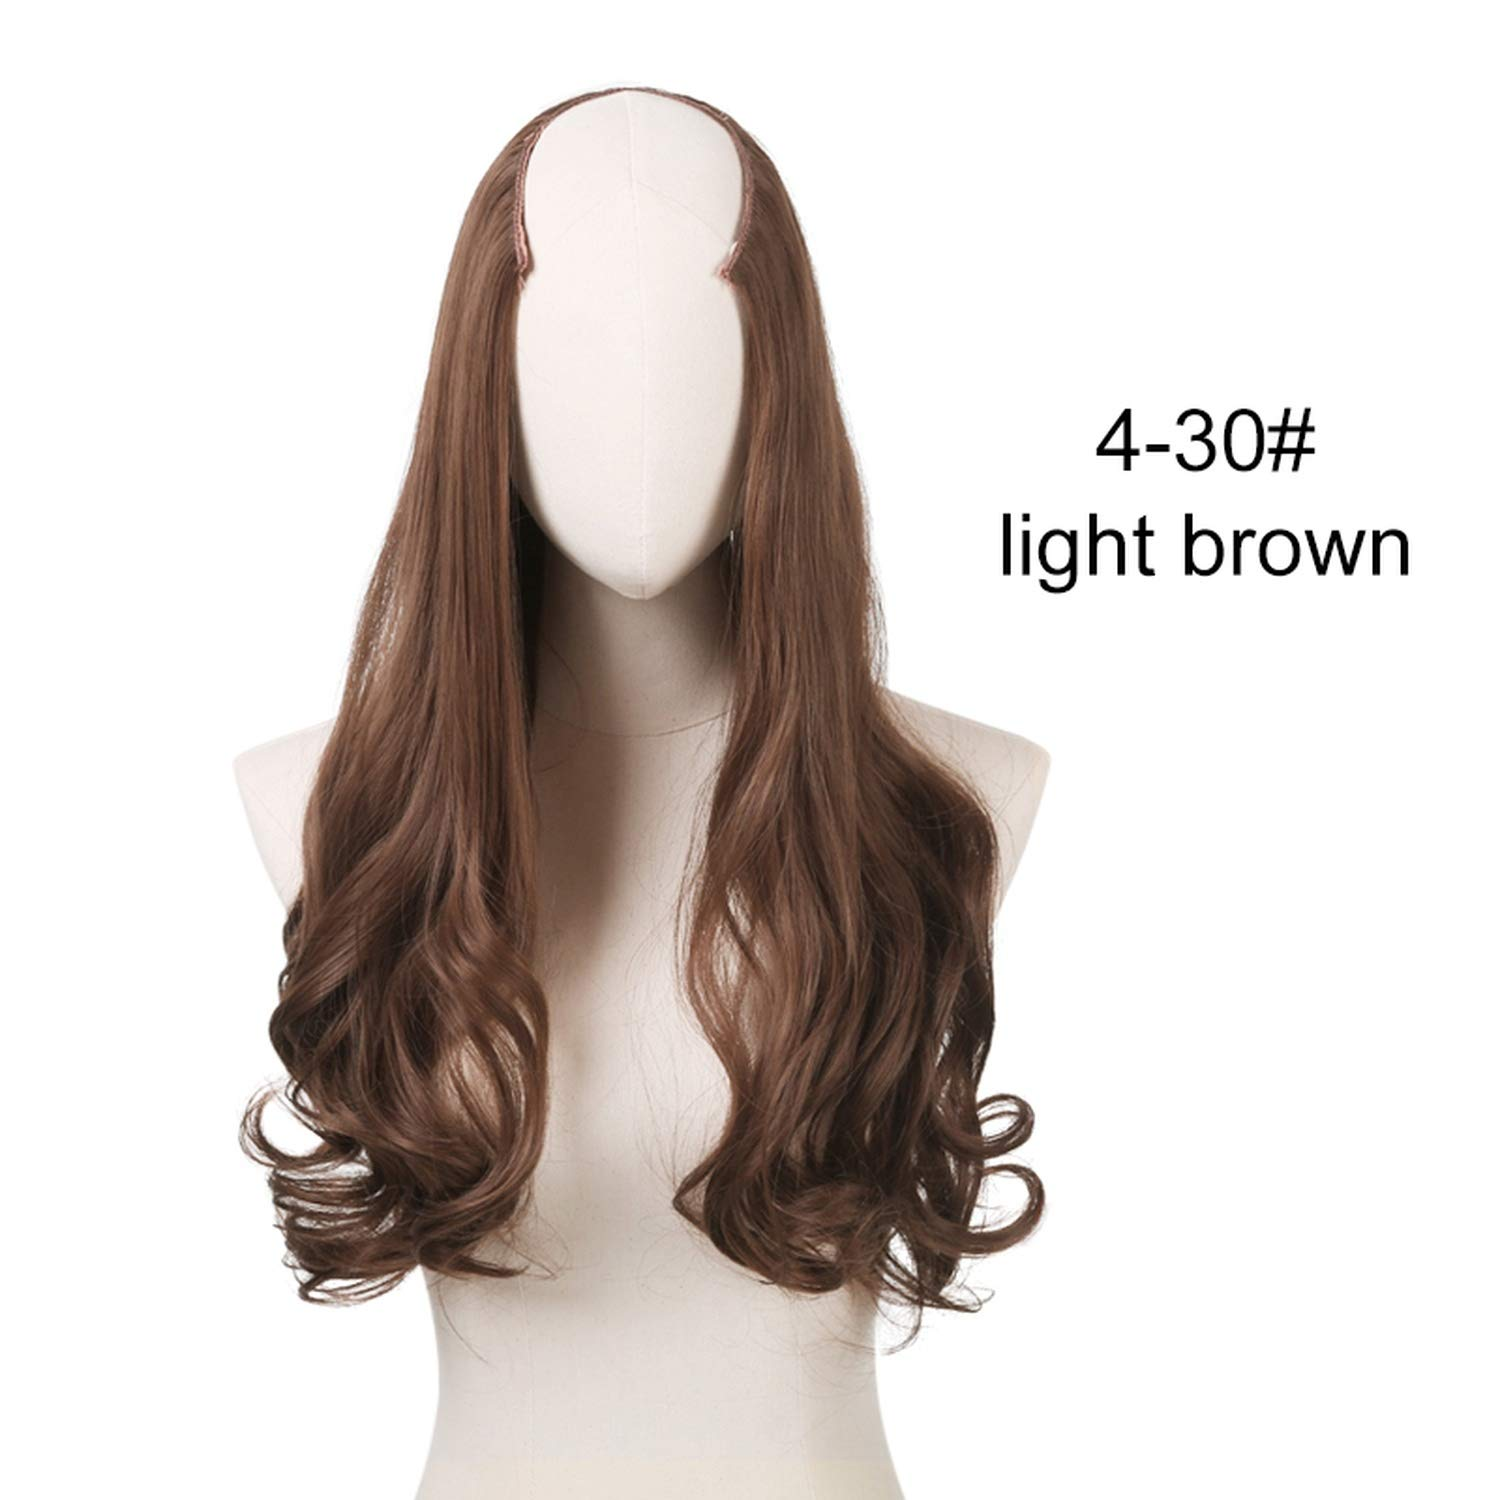 Full Head U-Part Hair Extension Clip In Curly Natural Hairpieces Heat Resistant, Copper Auburn, 24inches Warm Space